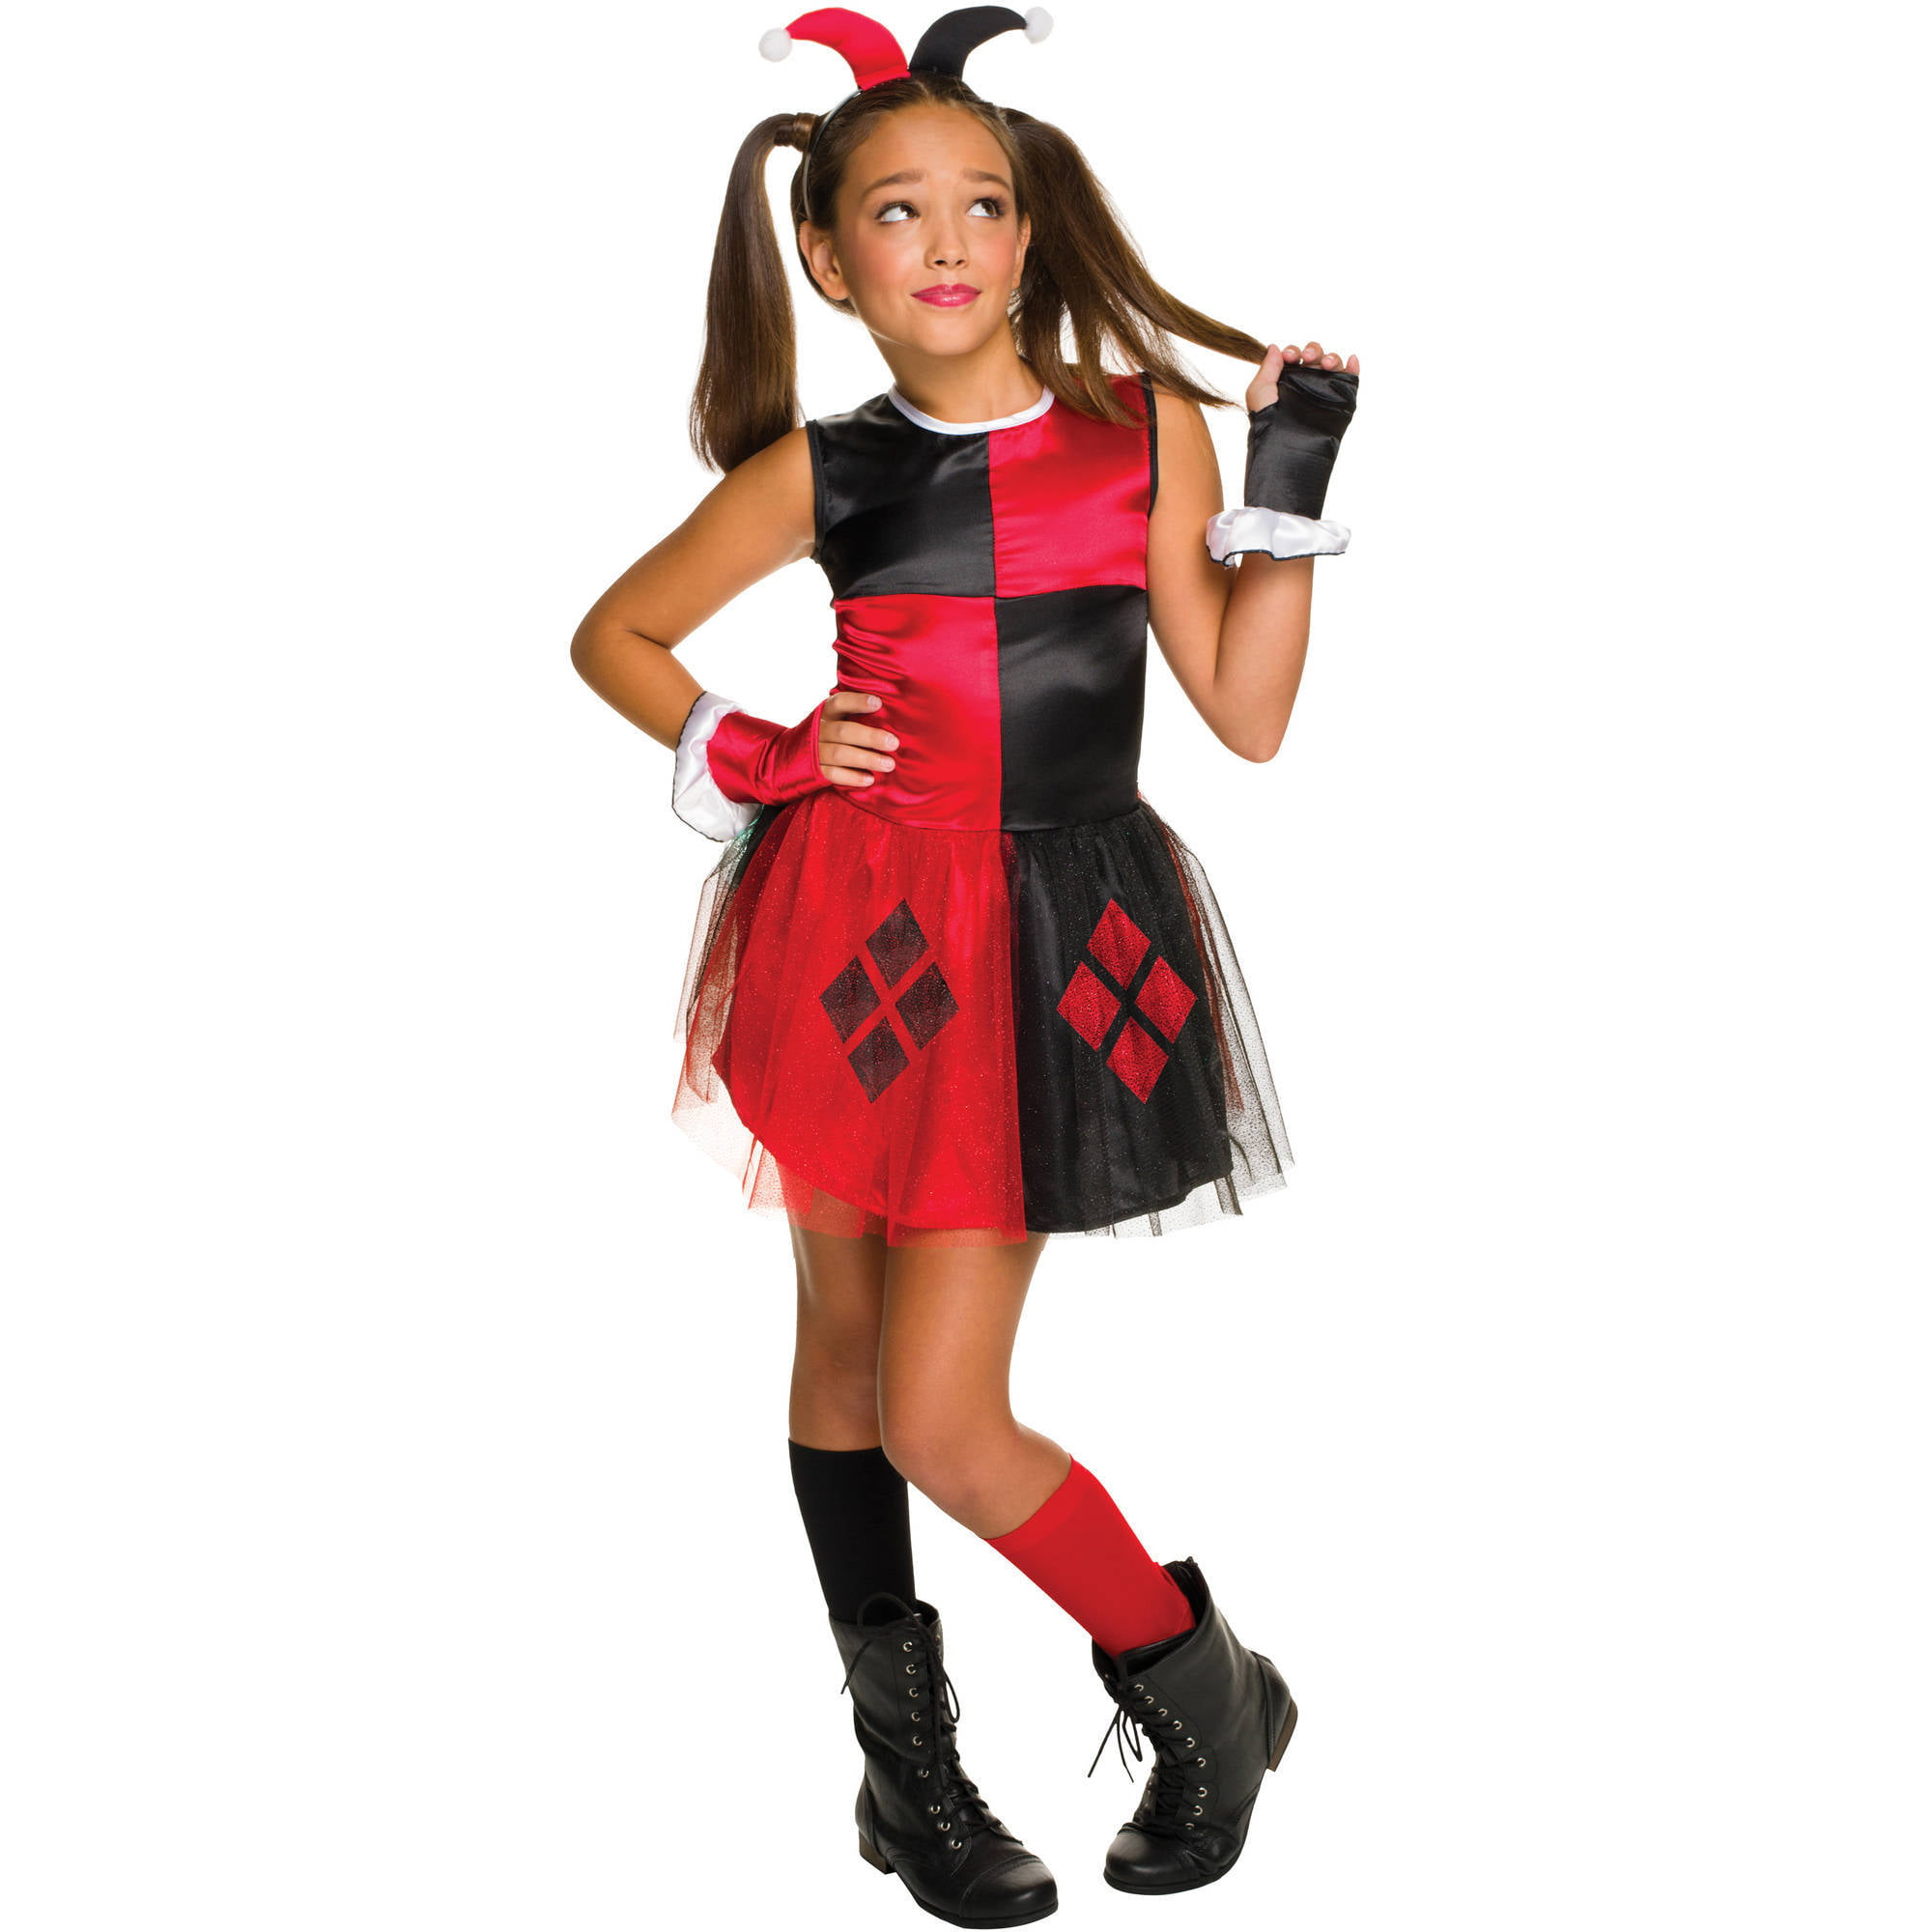 Harley Quinn Girls Tutu Dress Halloween Costume - Walmart com